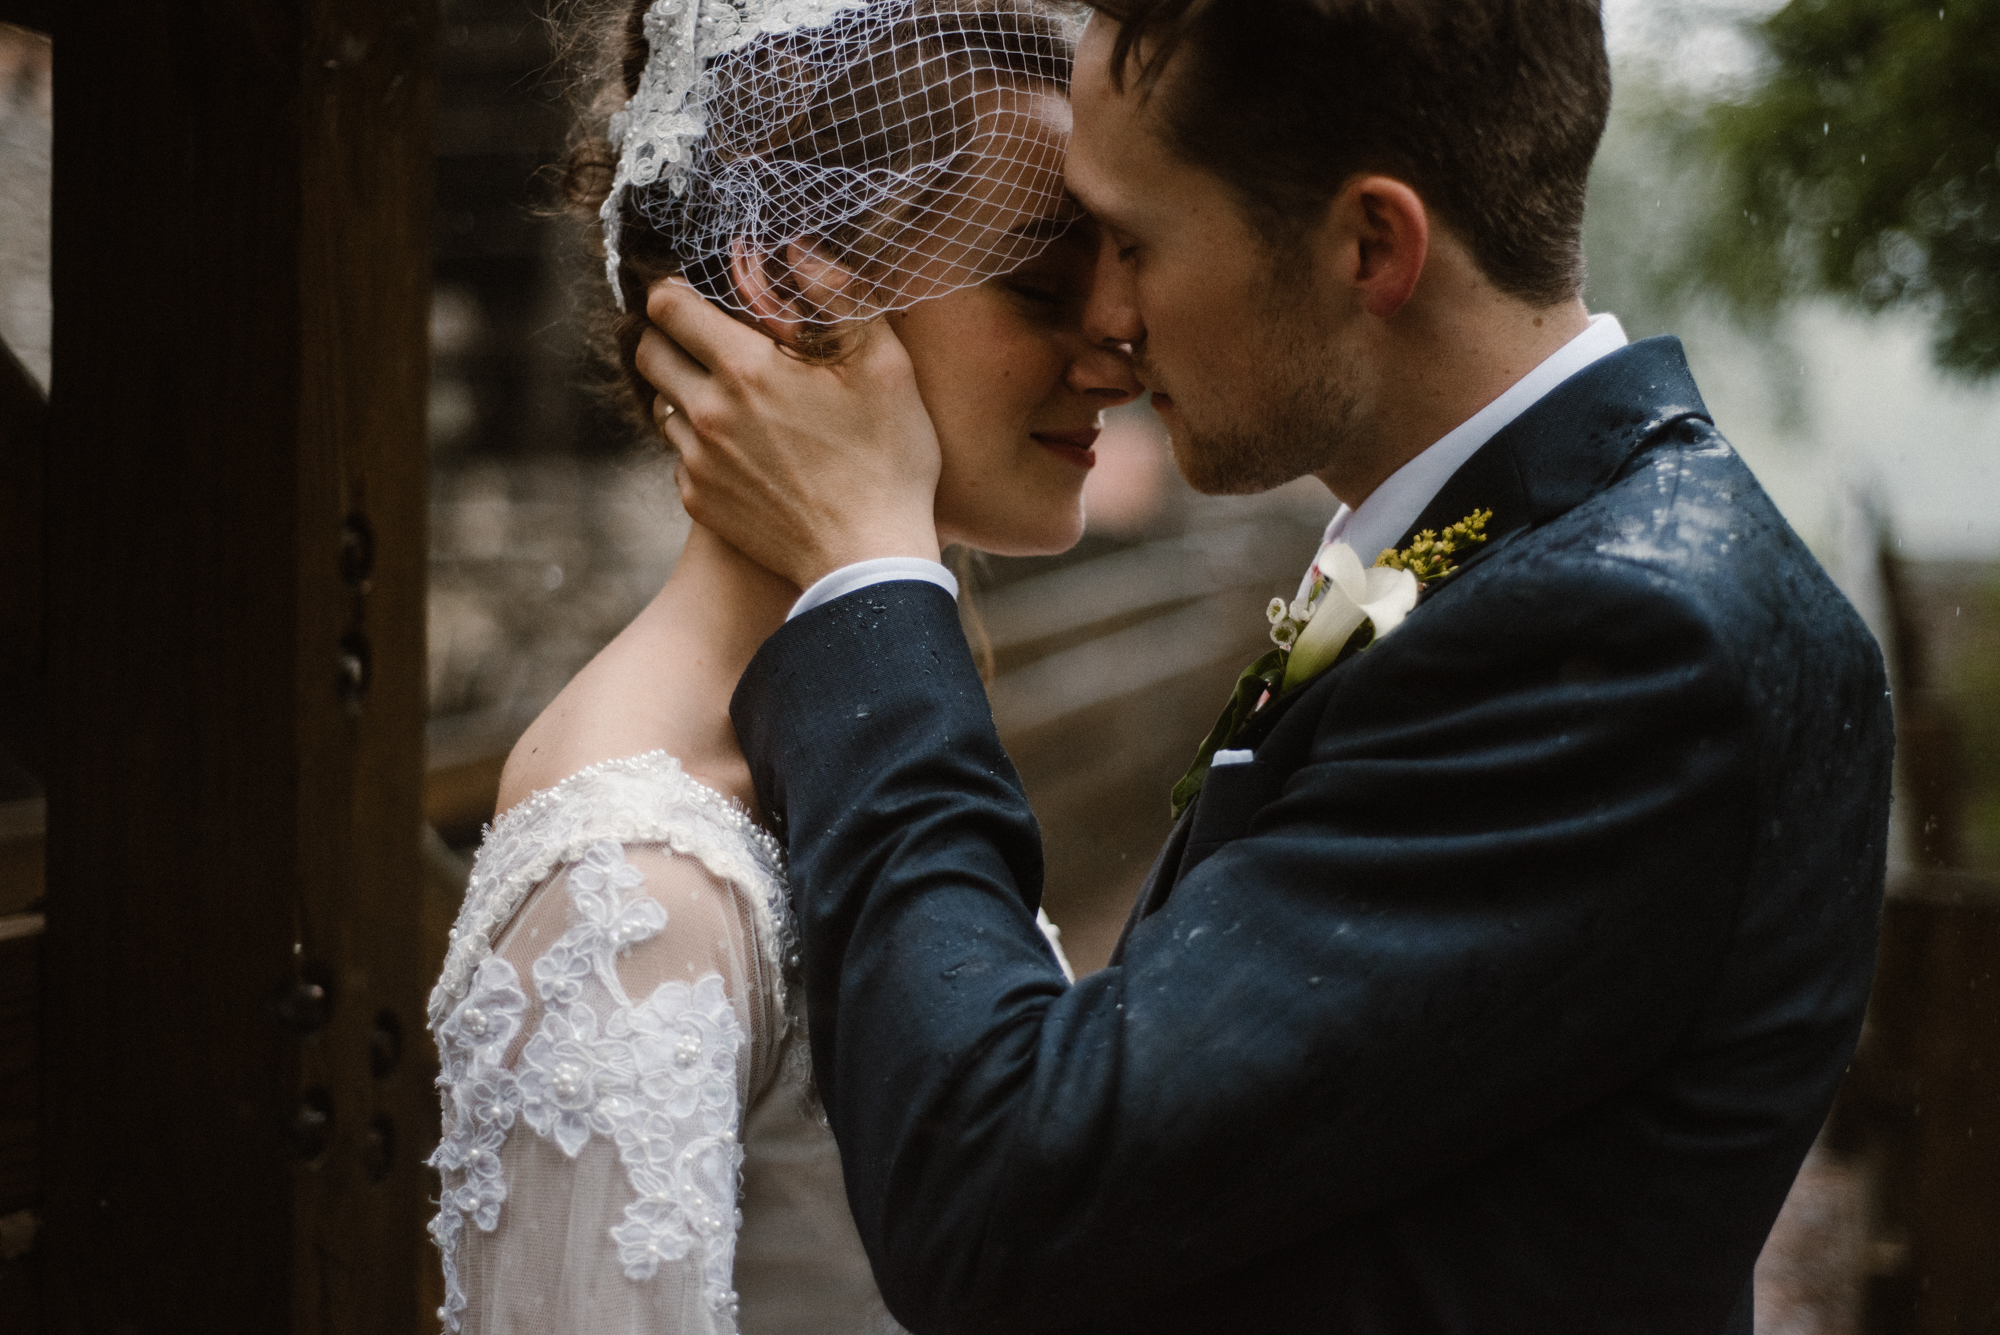 Mairi and Jude - Rainy Backyard Wedding - Intimate Wedding - Fun Reception Photos - Chicago Wedding Photographer - Catholic Wedding - White Sails Creative - Virginia Backyard Wedding Photographer_79.jpg